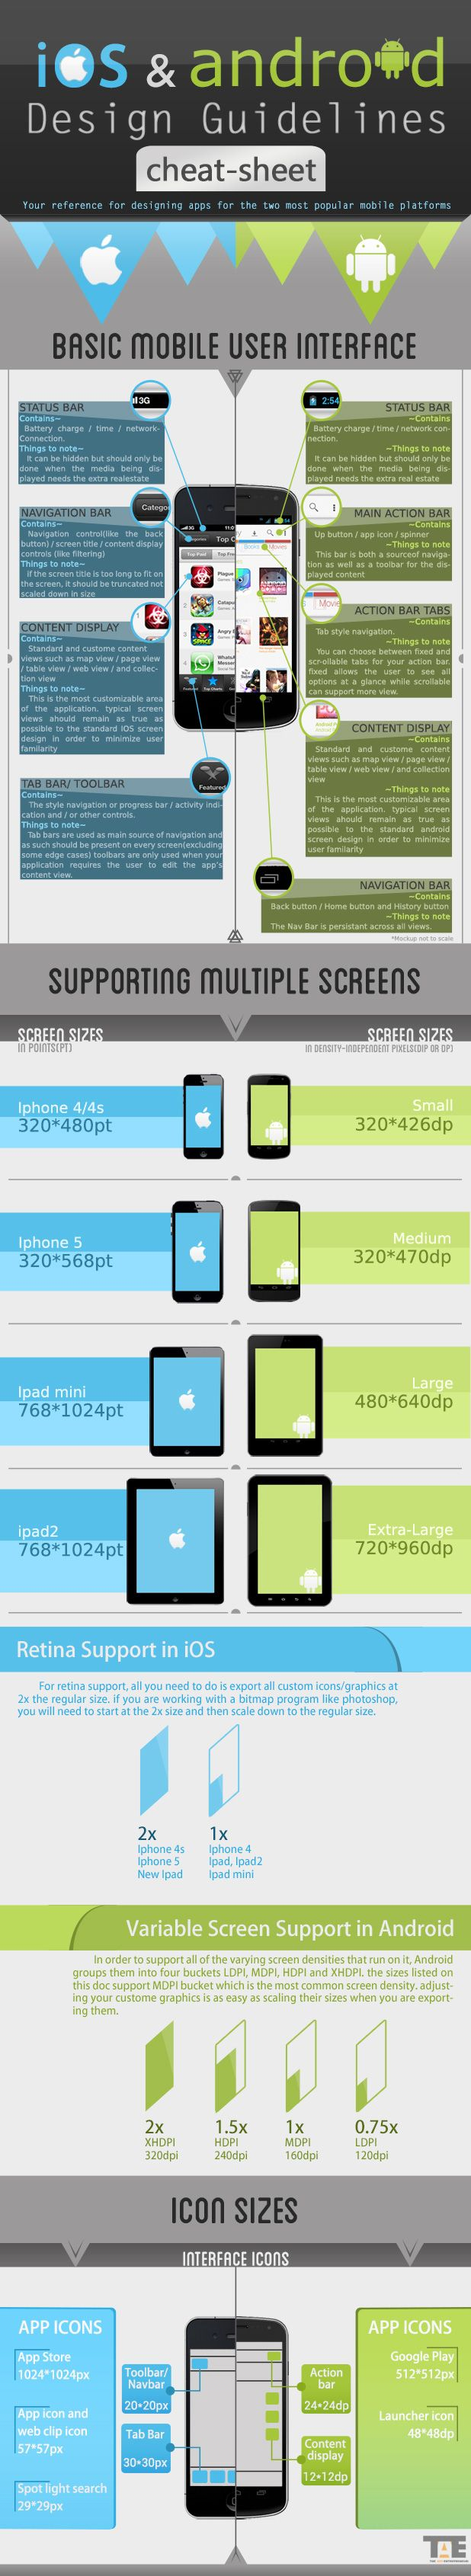 iOS vs Android: Difference in Design Guidelines